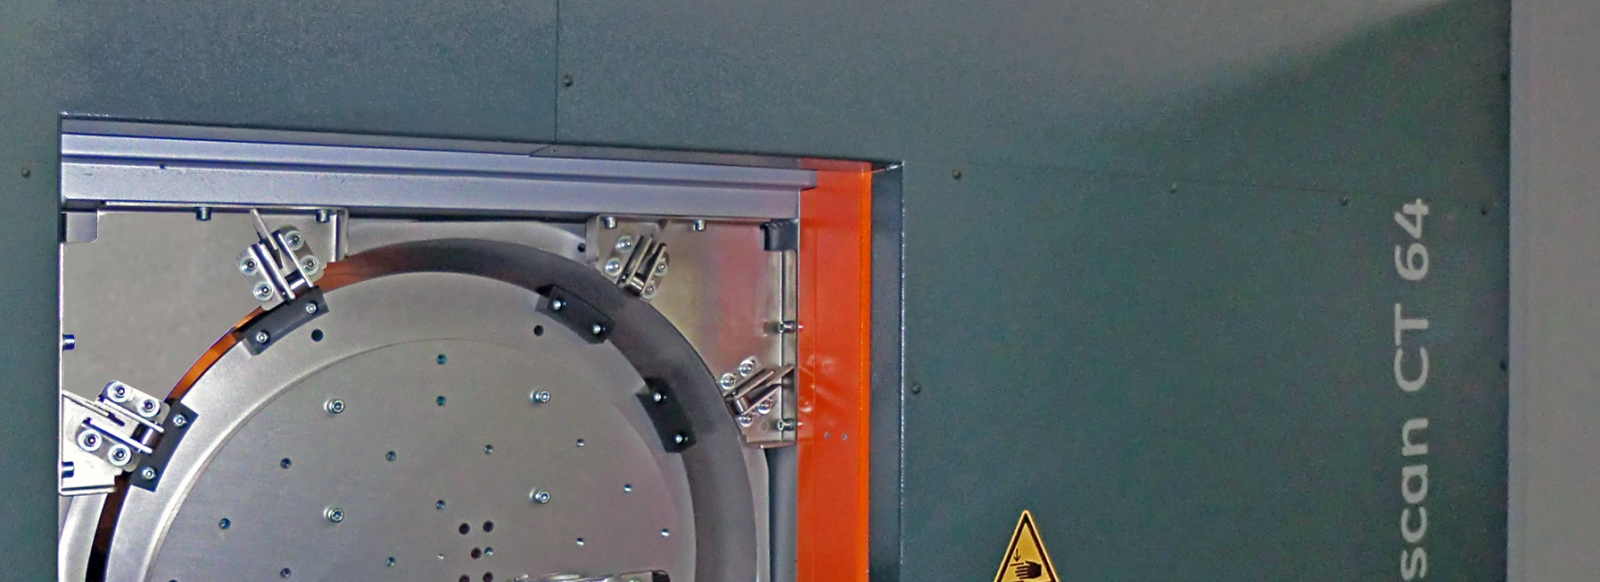 inspection technologies: non-destructive testing products & services |  inspection & ndt